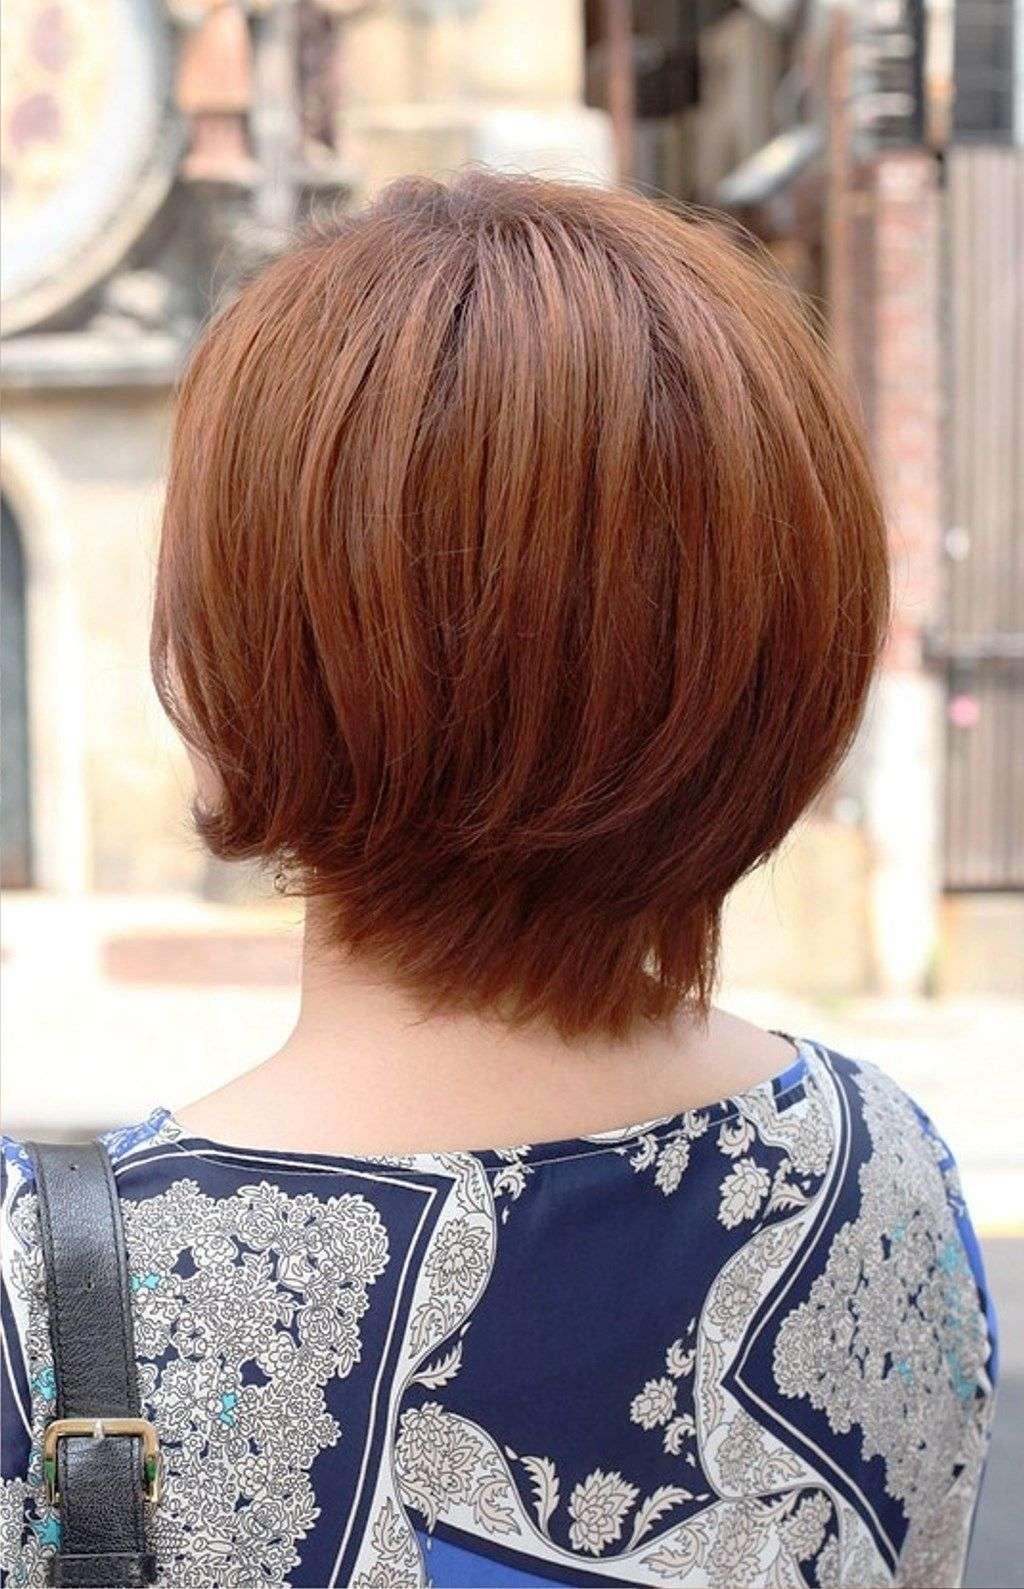 Back hairstyle for women trend hairstyle and haircut